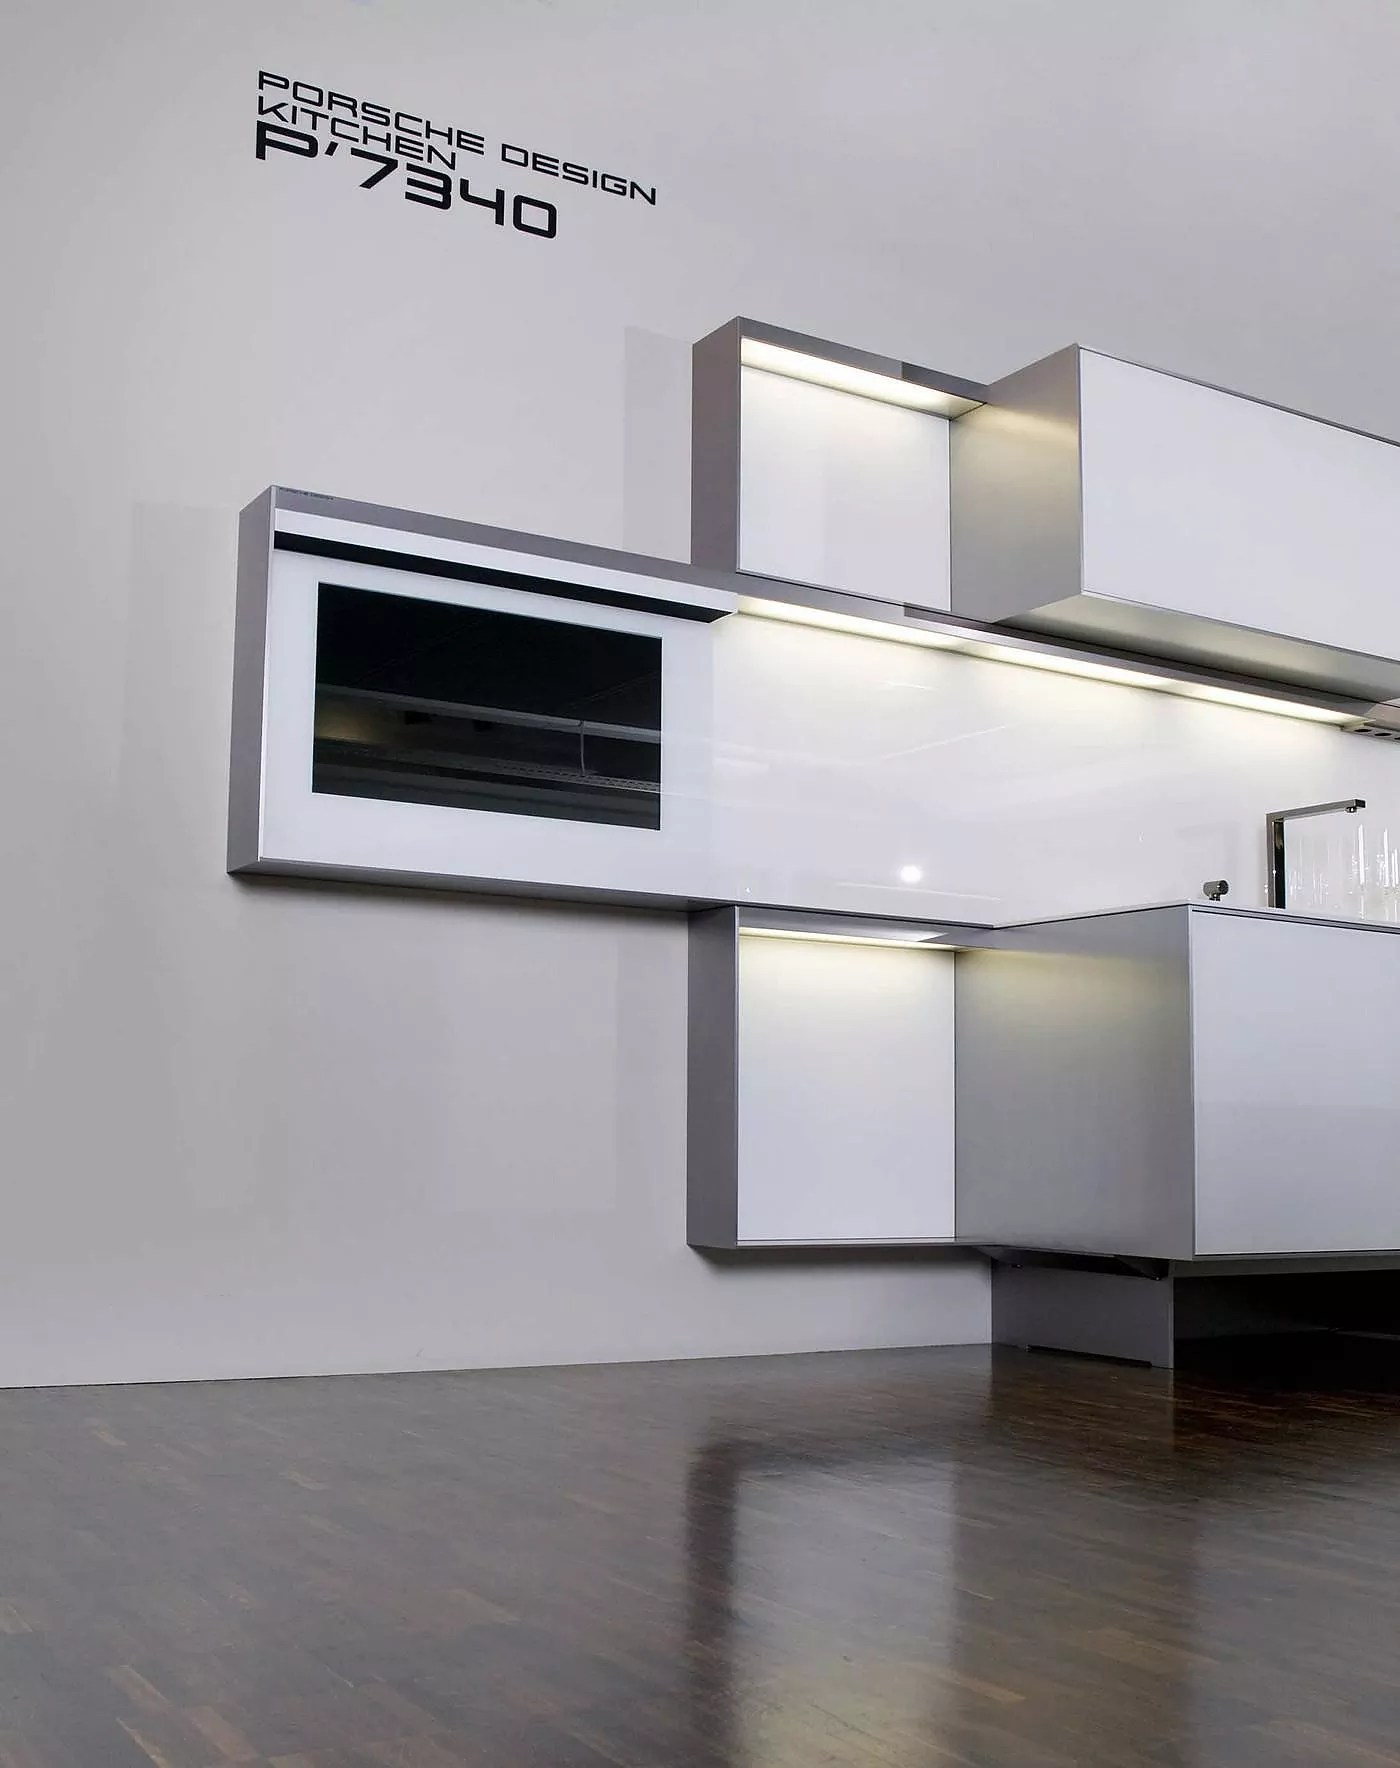 Porsche Design Küche Poggenpohl Poggenpohl Porsche Design Kitchen P7340 Design Is This